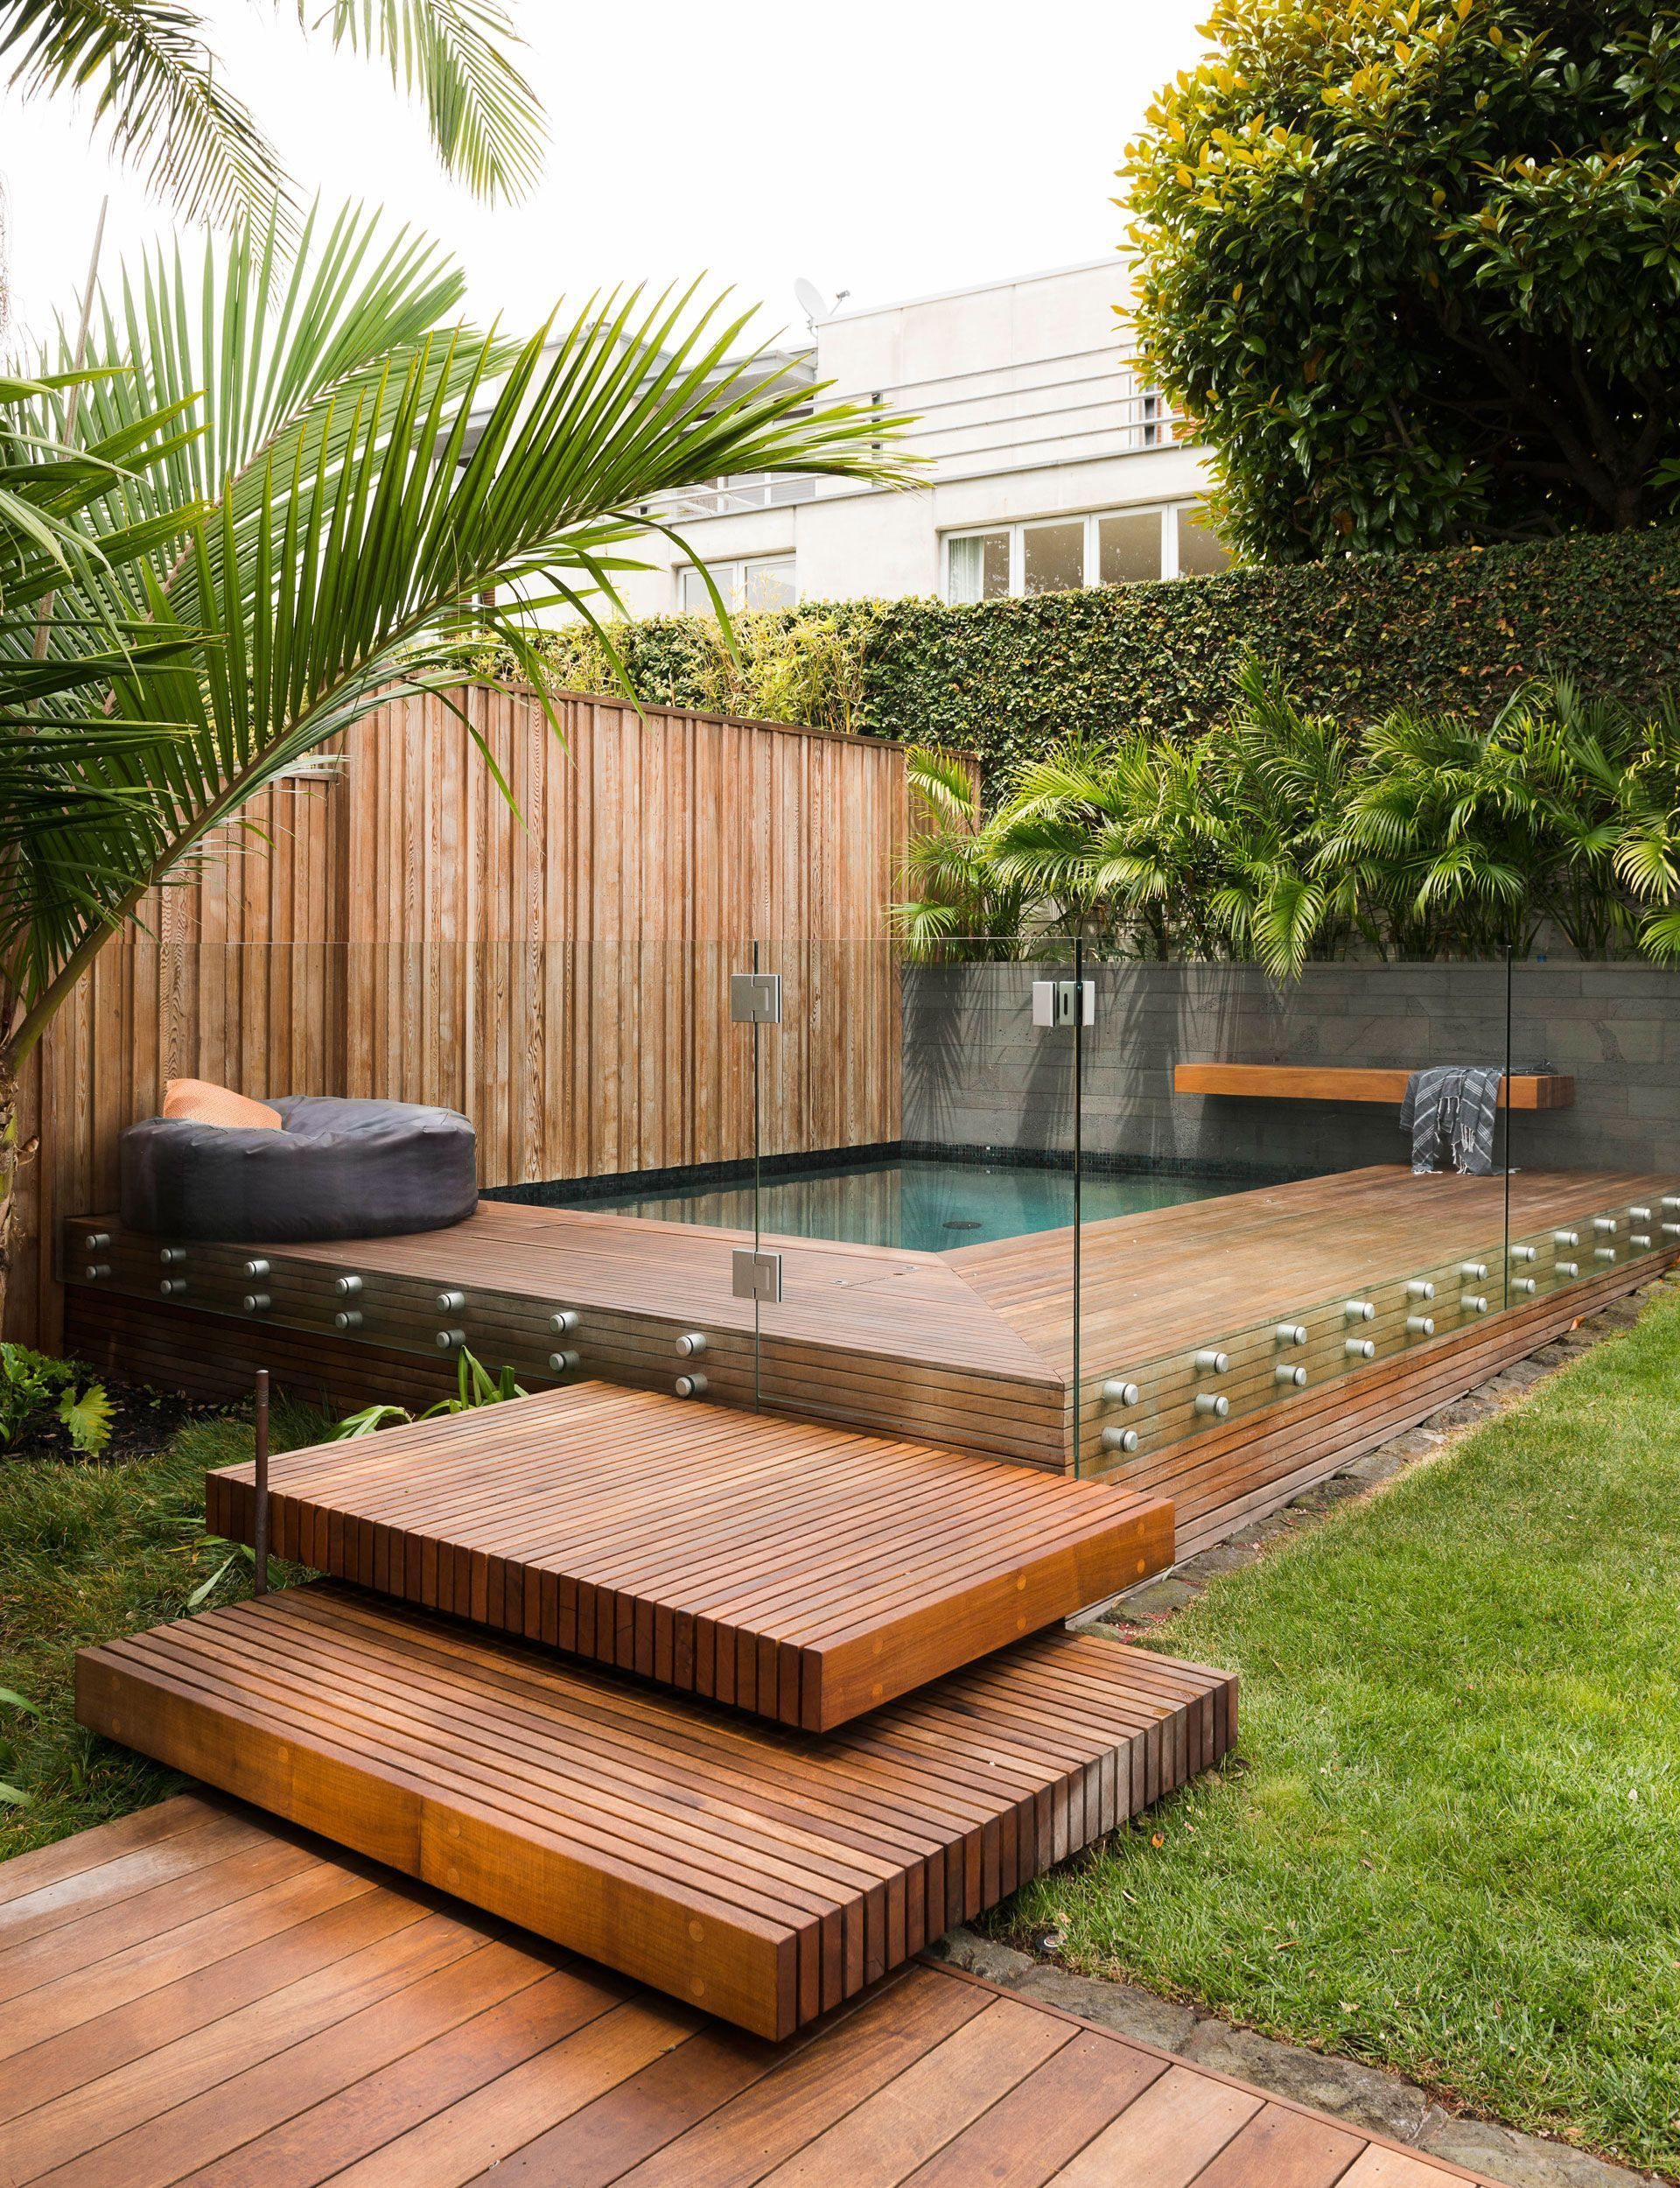 Structures Aucklands Furniture Prompted Sitethis Unlovely Outlook Package Outdoor Small Backyard Landscaping Backyard Design Swimming Pools Backyard